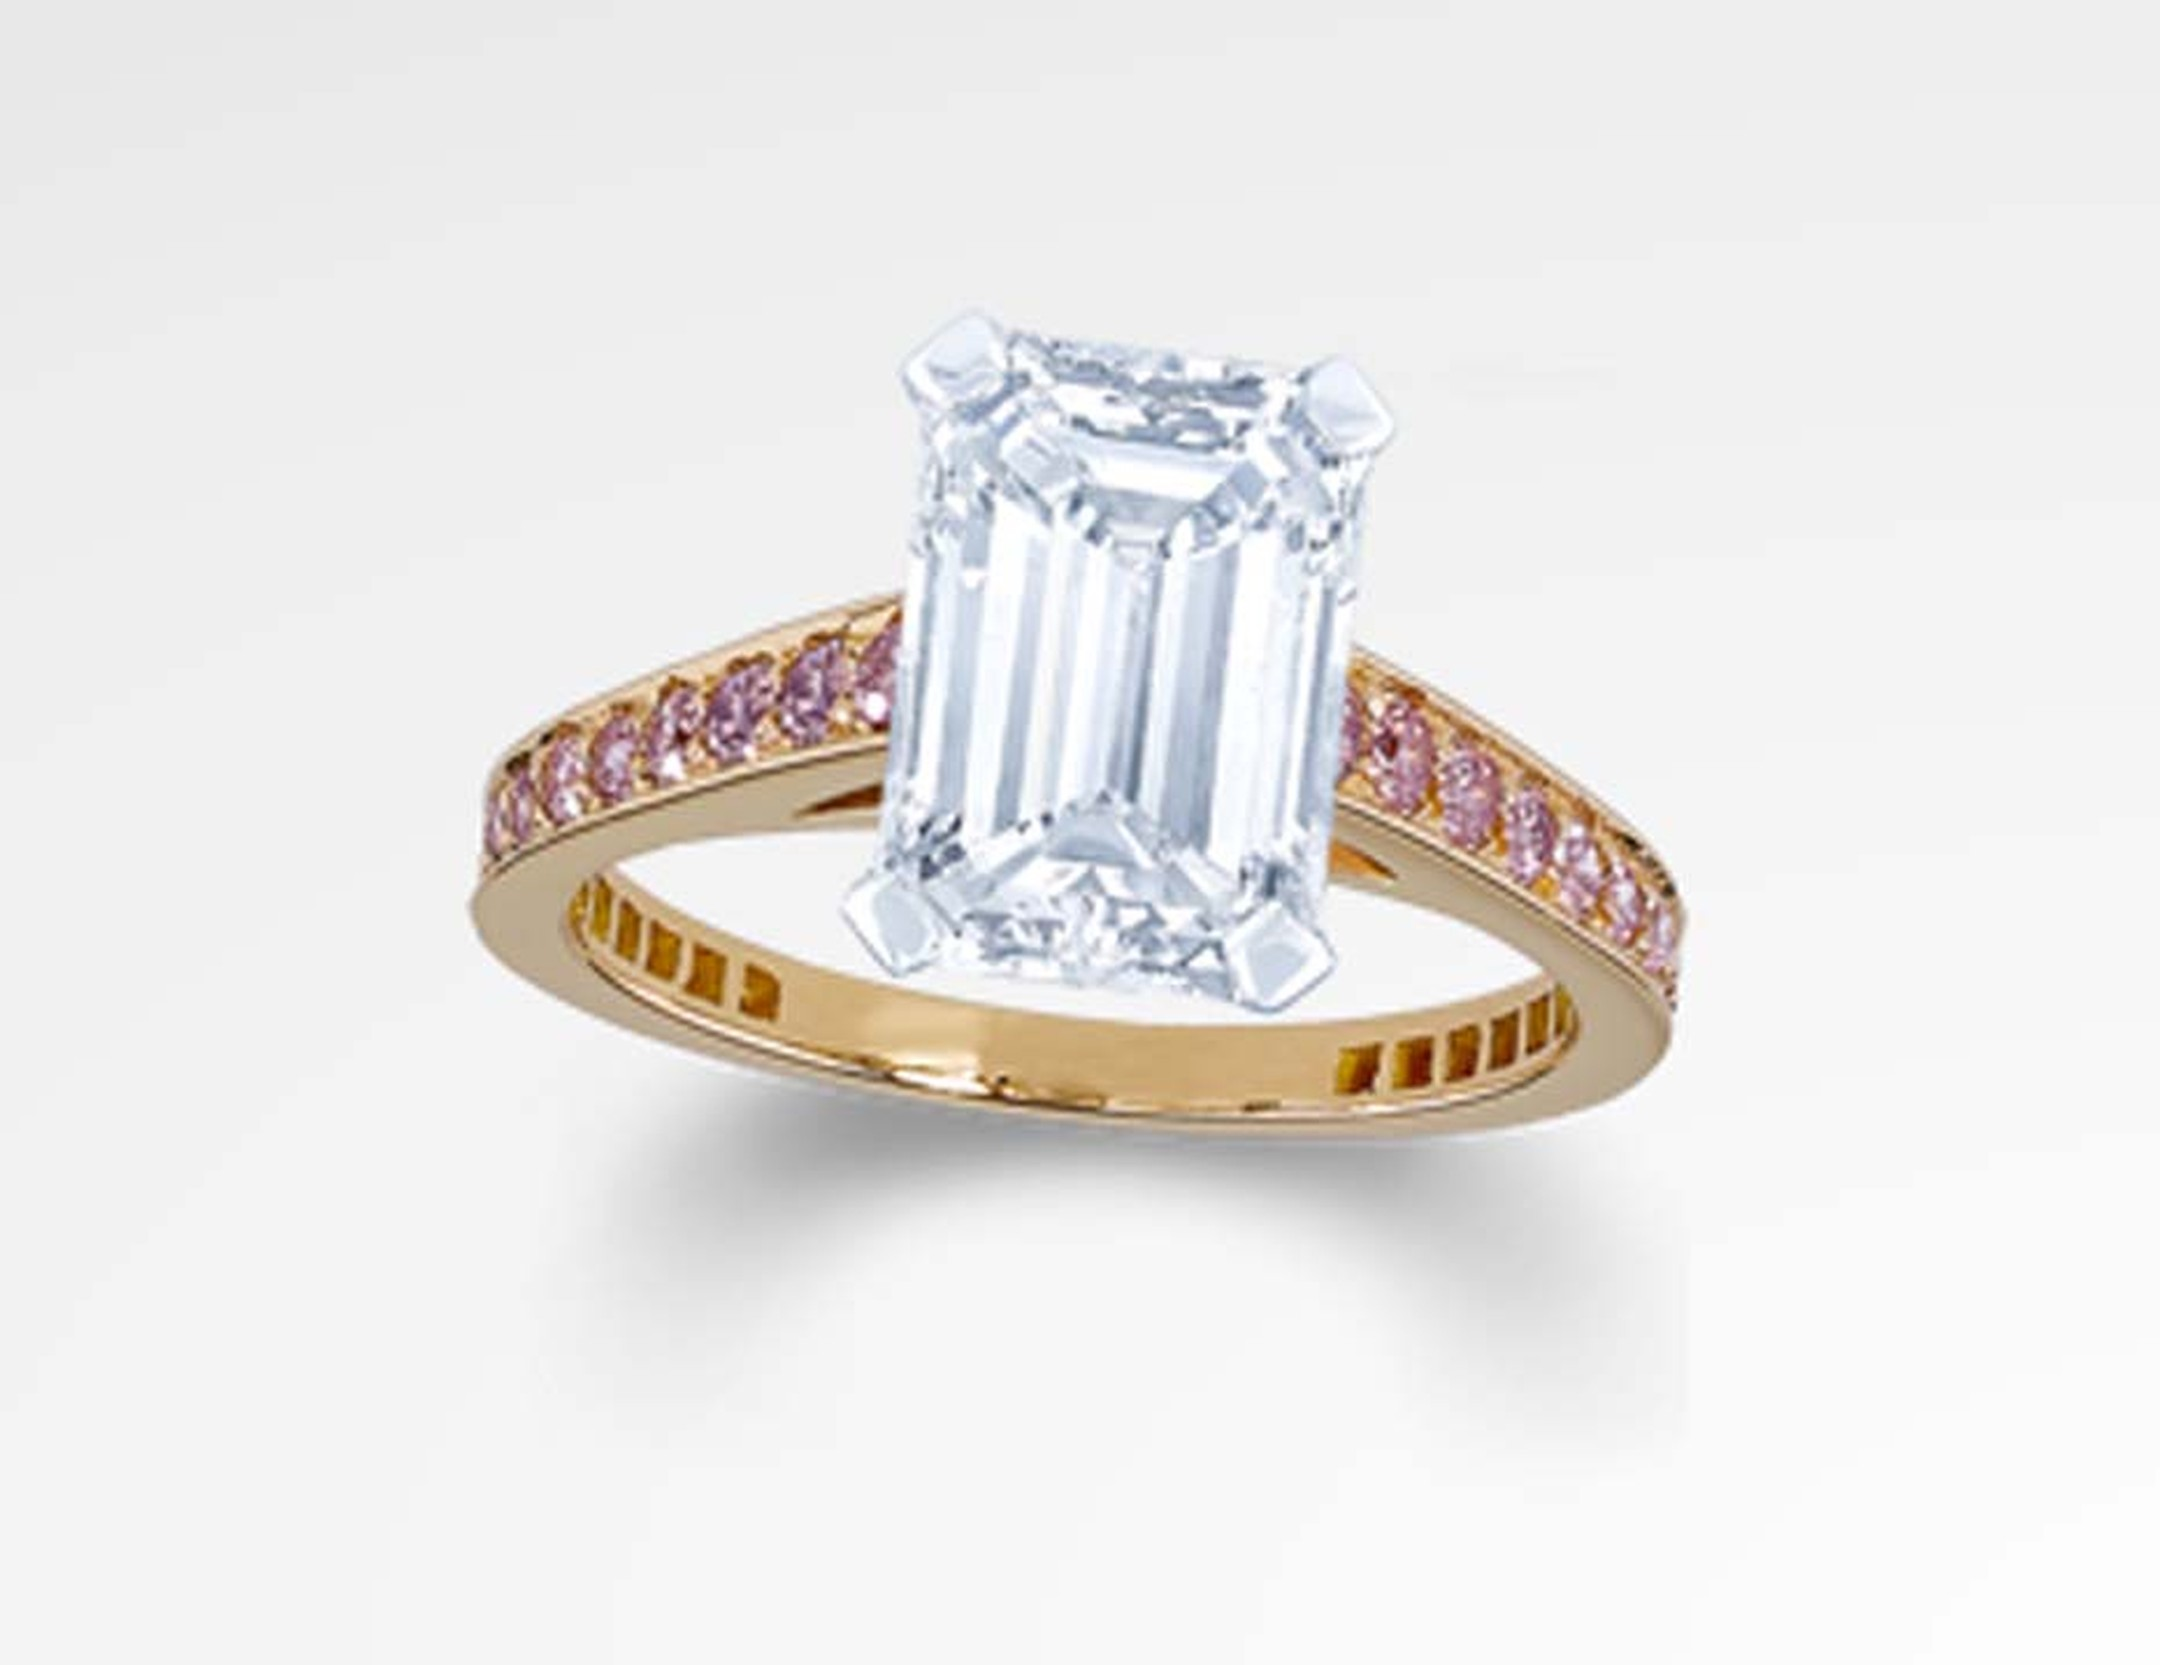 Graff emerald cut engagement ring featuring a rose gold band set with pink pave diamonds.